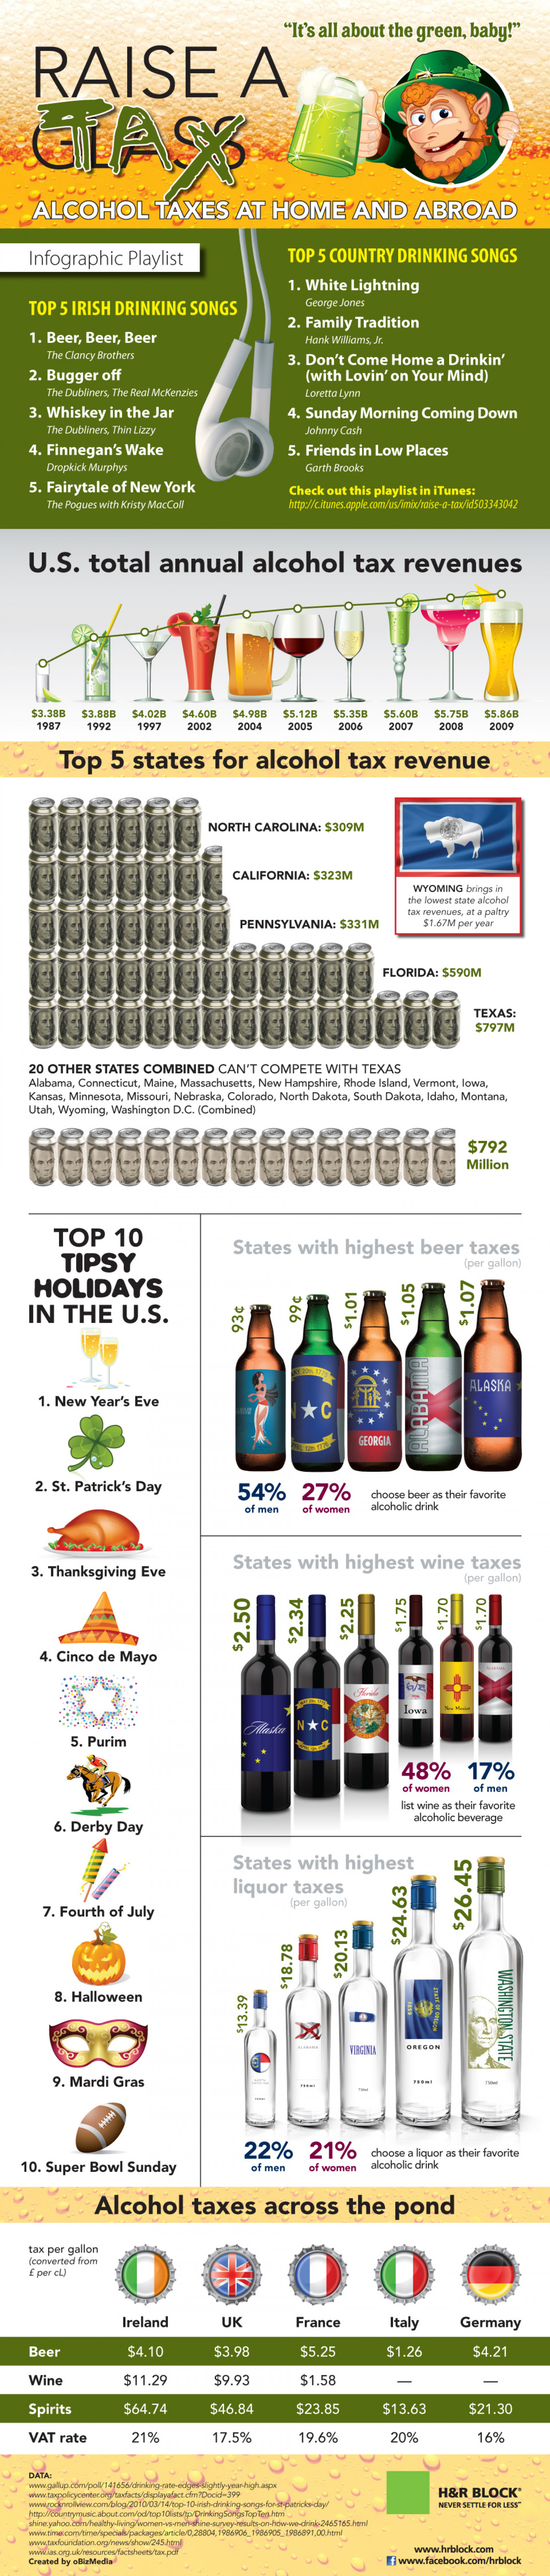 Alcohol Taxes In The U.S. and Around The World Infographic